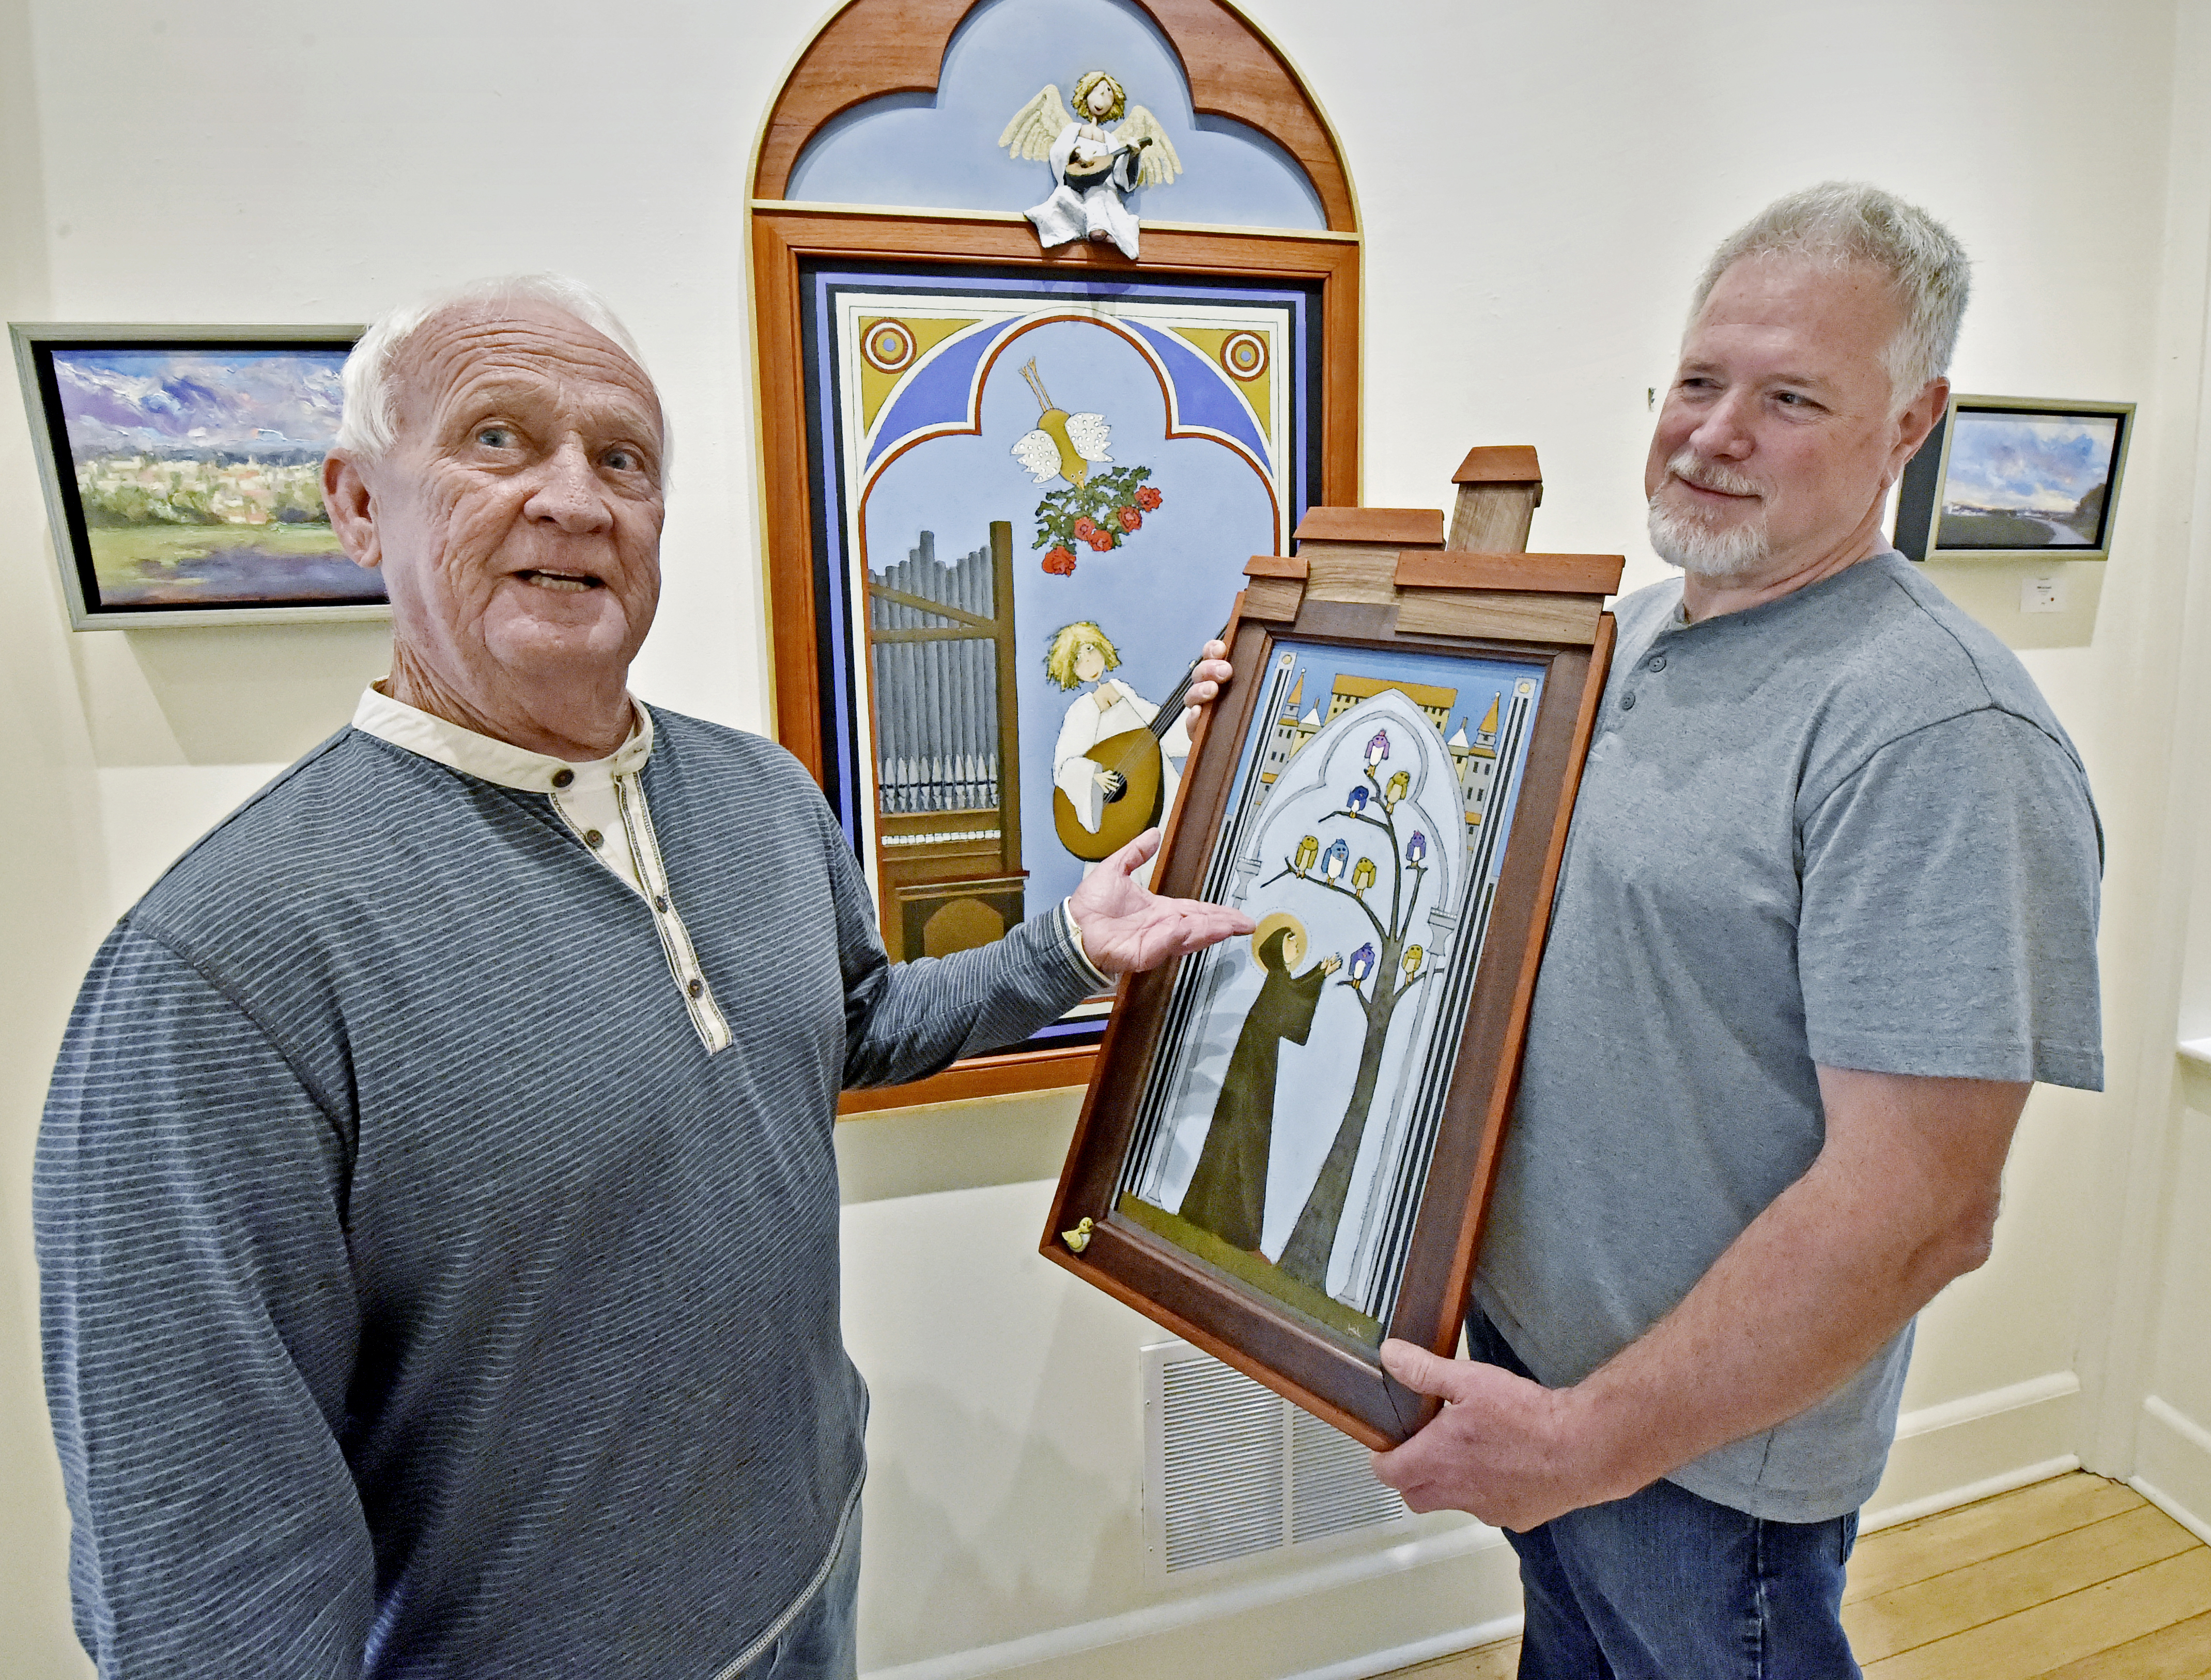 Saints And Their Stories On Display At Red Raven Art Co In Collaborative Show With Fred Rodger And Mark Dennis Entertainment Lancasteronline Com